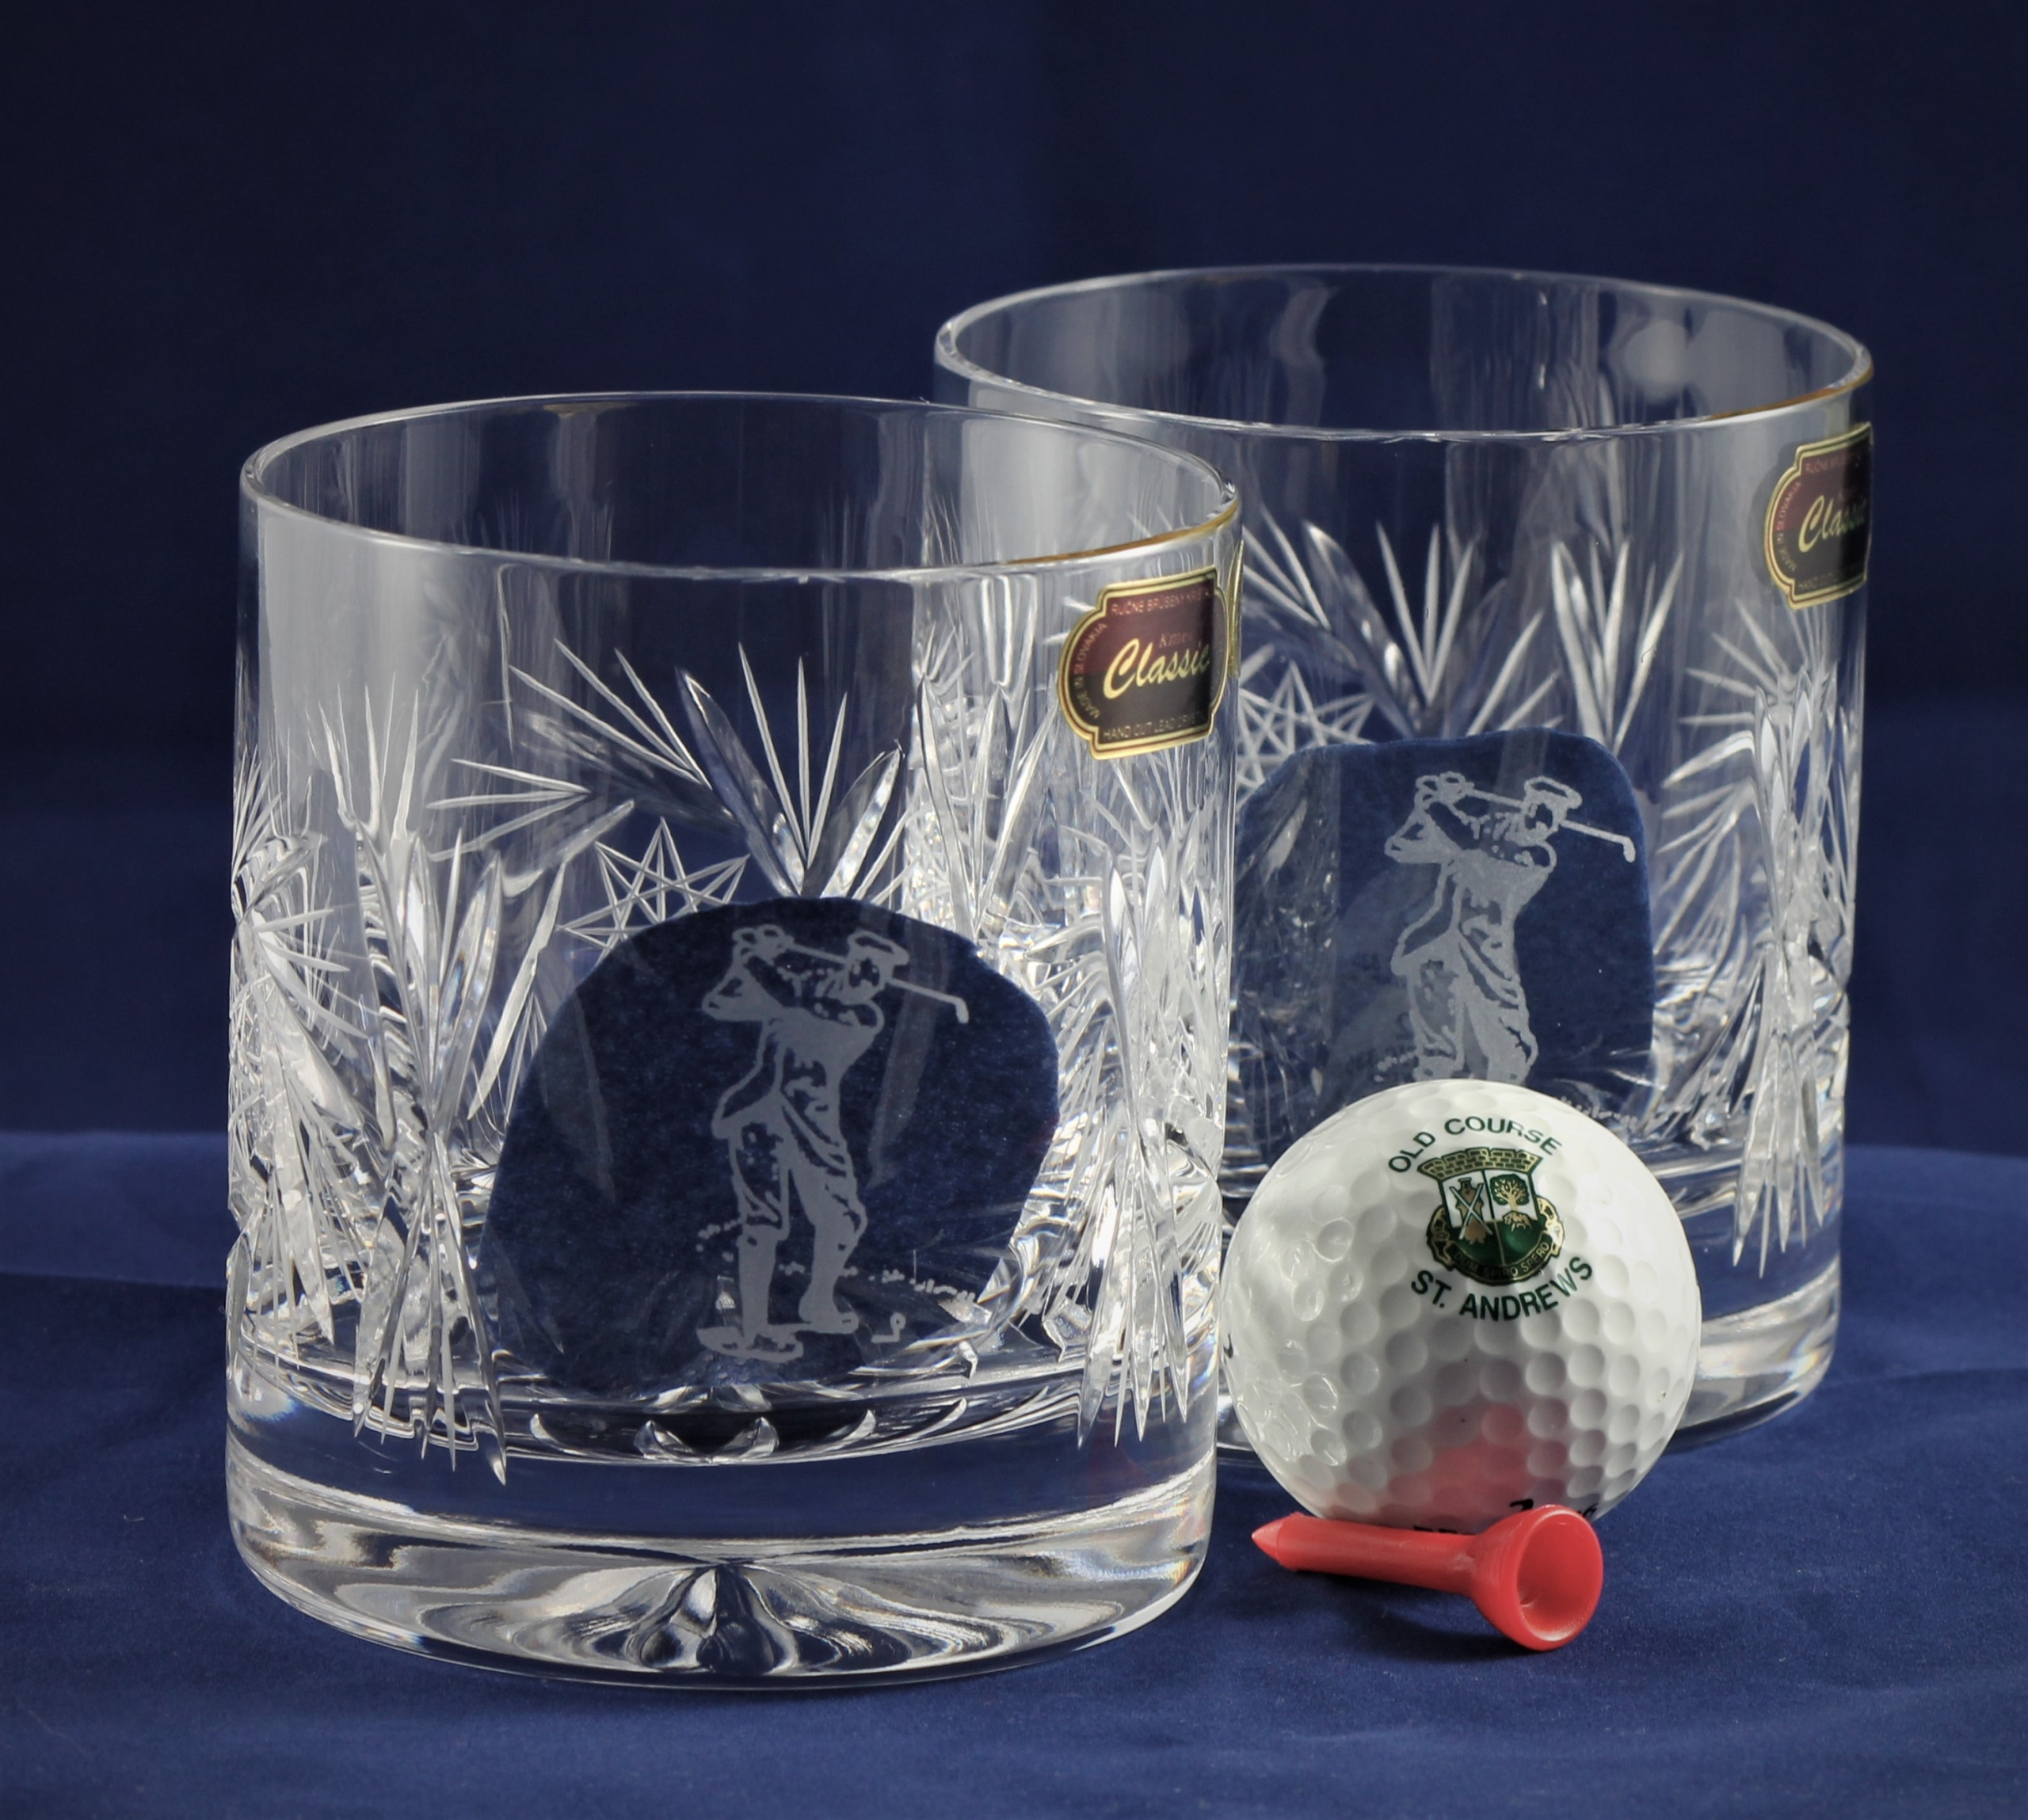 19th Hole Crystal Whisky Glasses Cristalopolis Bleikristall Shop